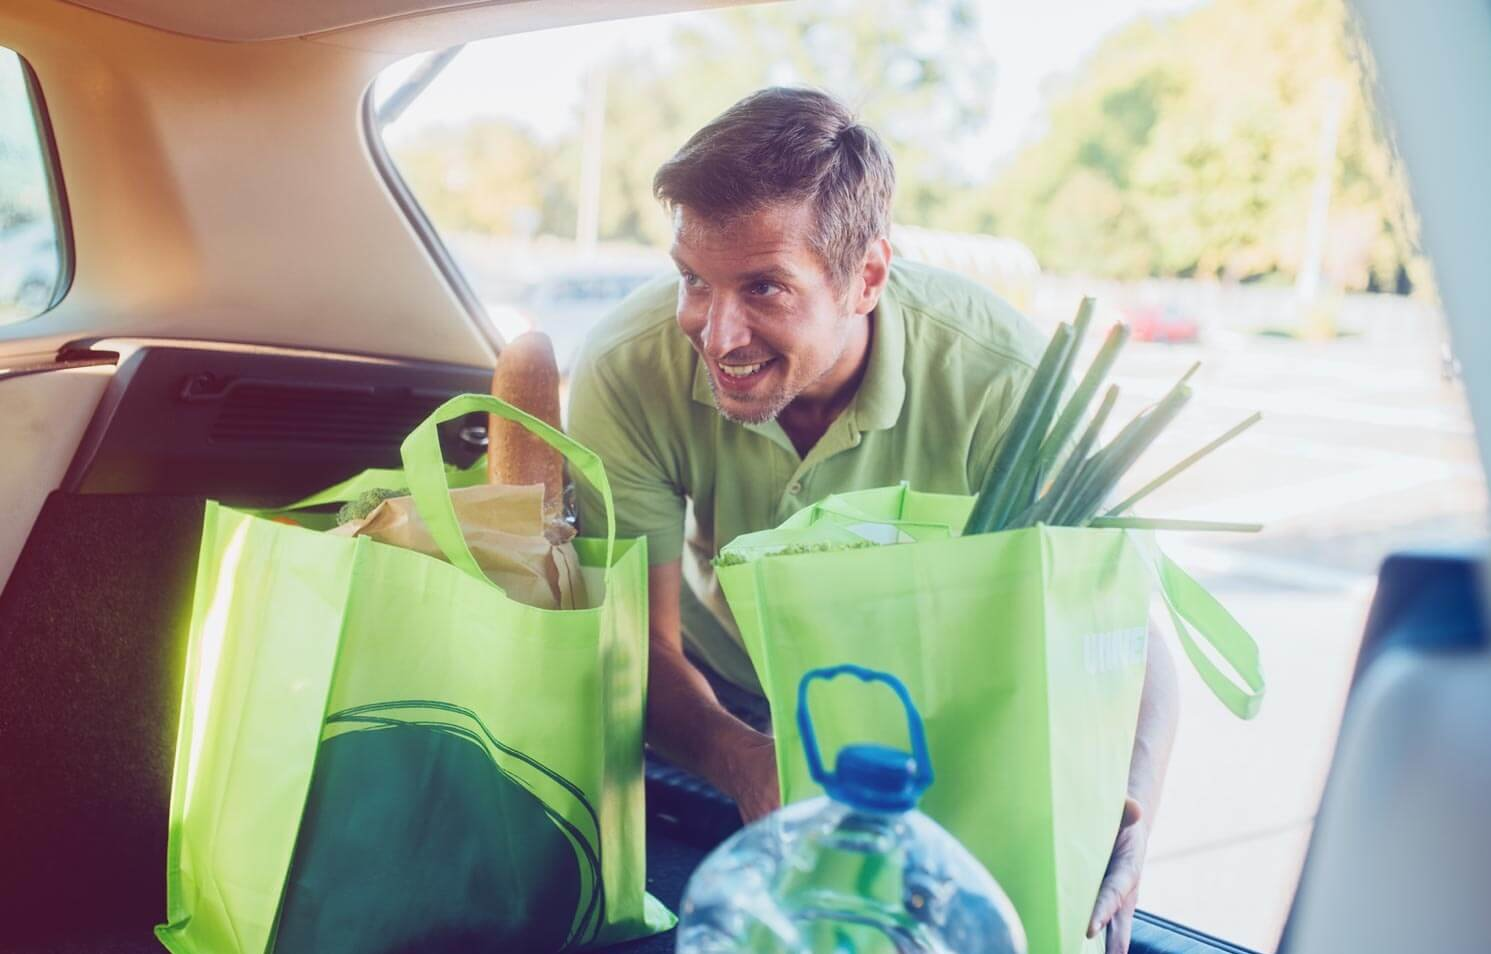 person loading groceries into car